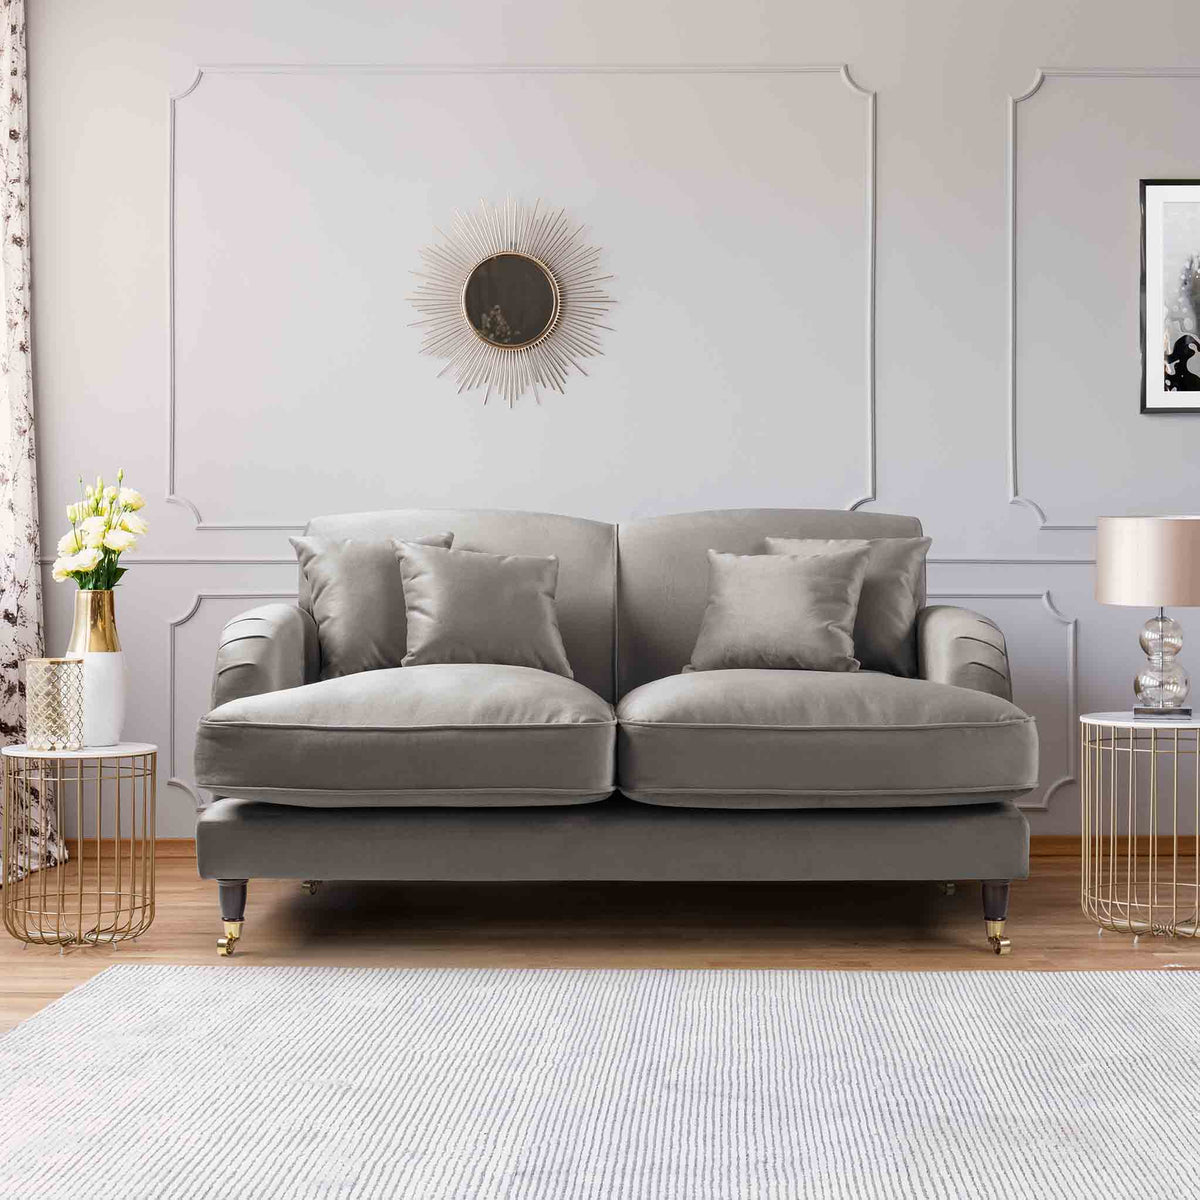 Piper Grey Velvet 2 Seater Sofa lifestyle image